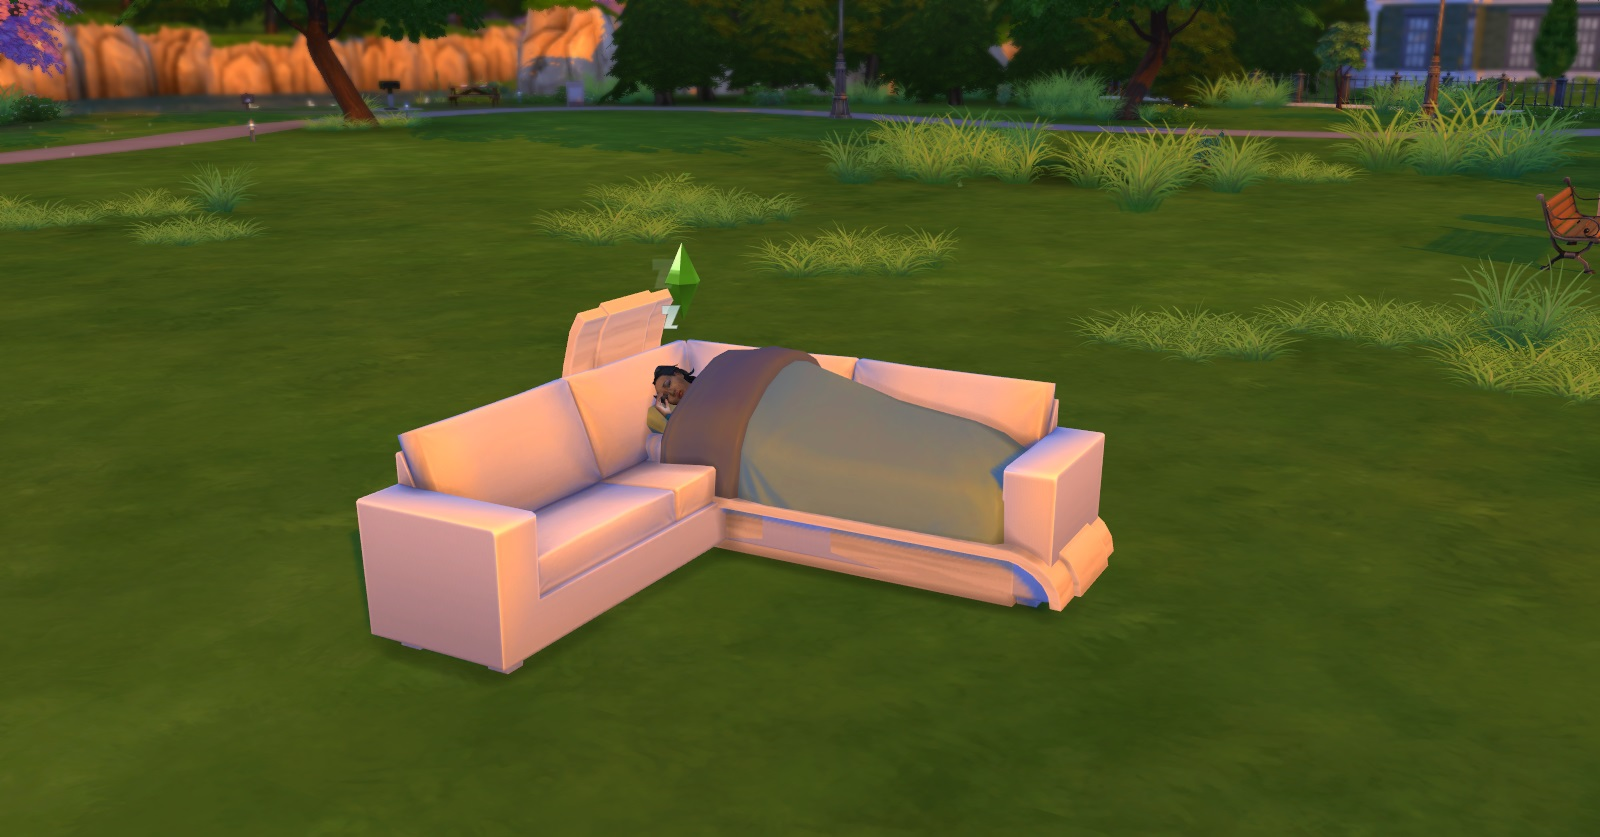 Cheat moveobjects mod di chuy n v t the sims 4 for Mods sims 4 muebles